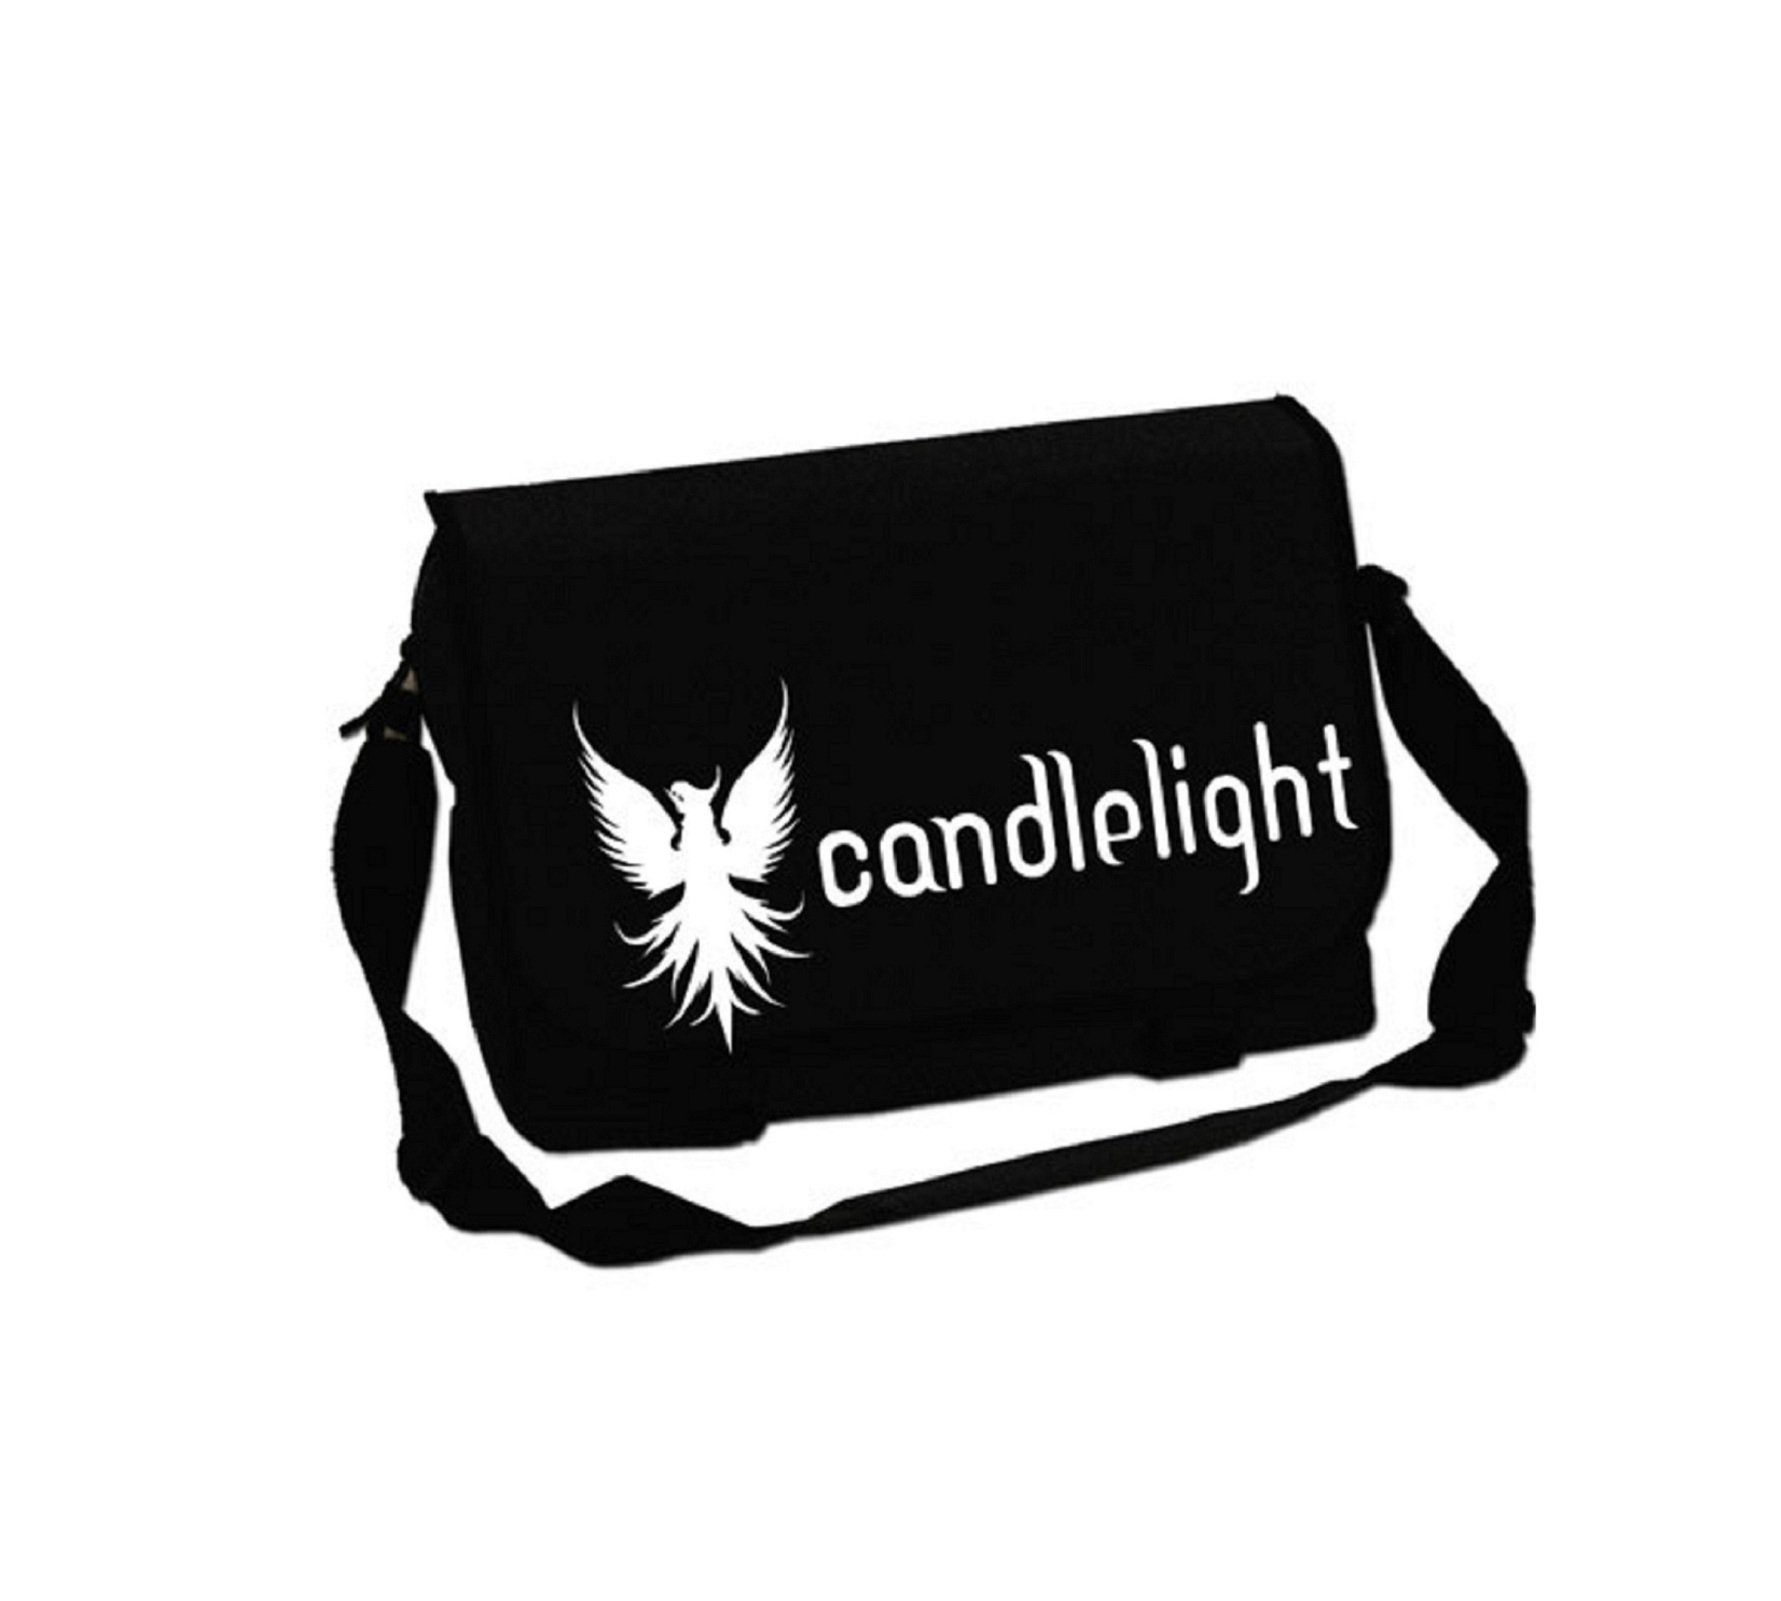 Candle Light Phoenix Official Black Messenger Bag by Candle Light